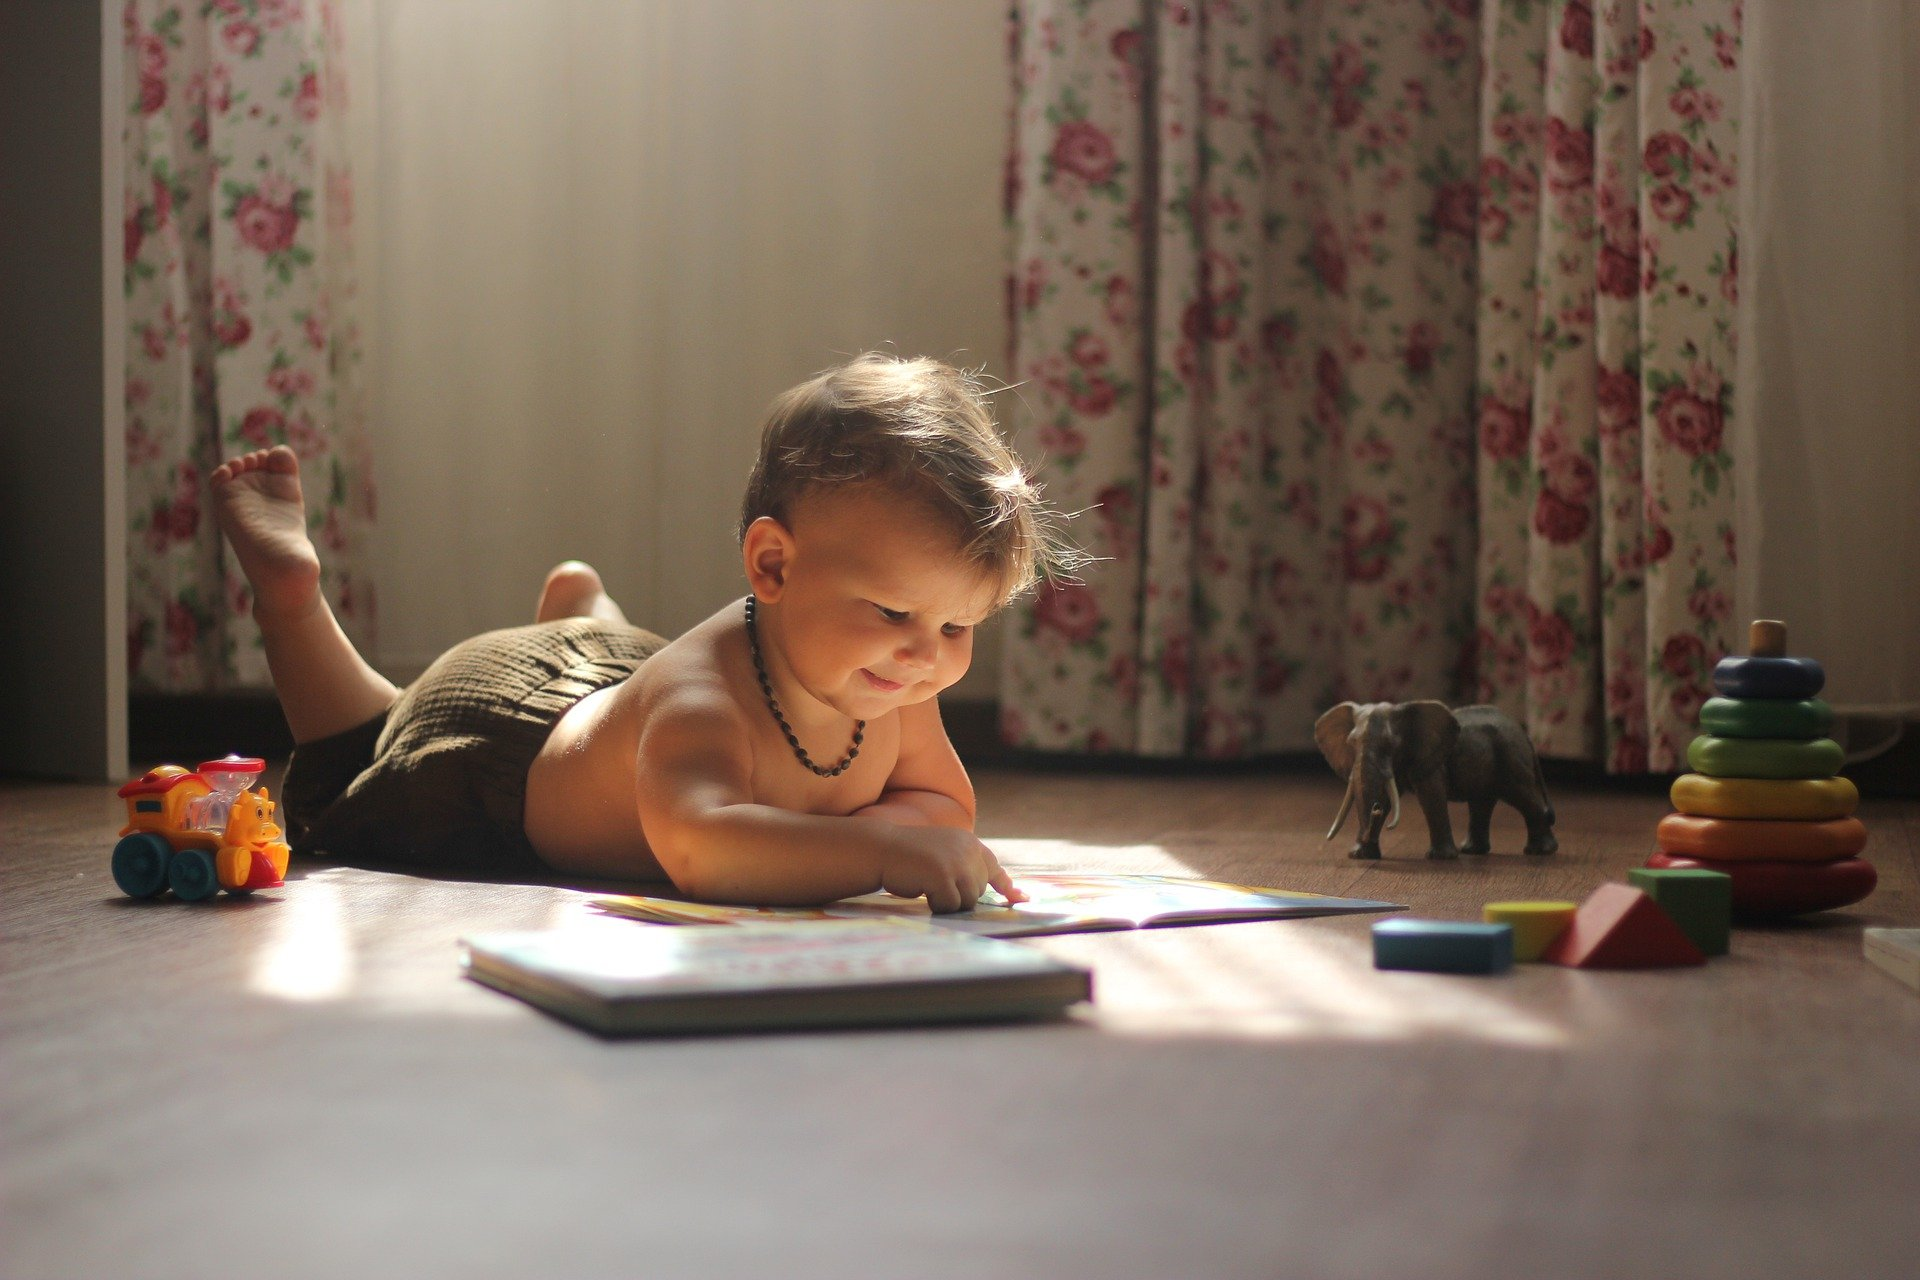 10 Fun Activities For Kids To Do At Home